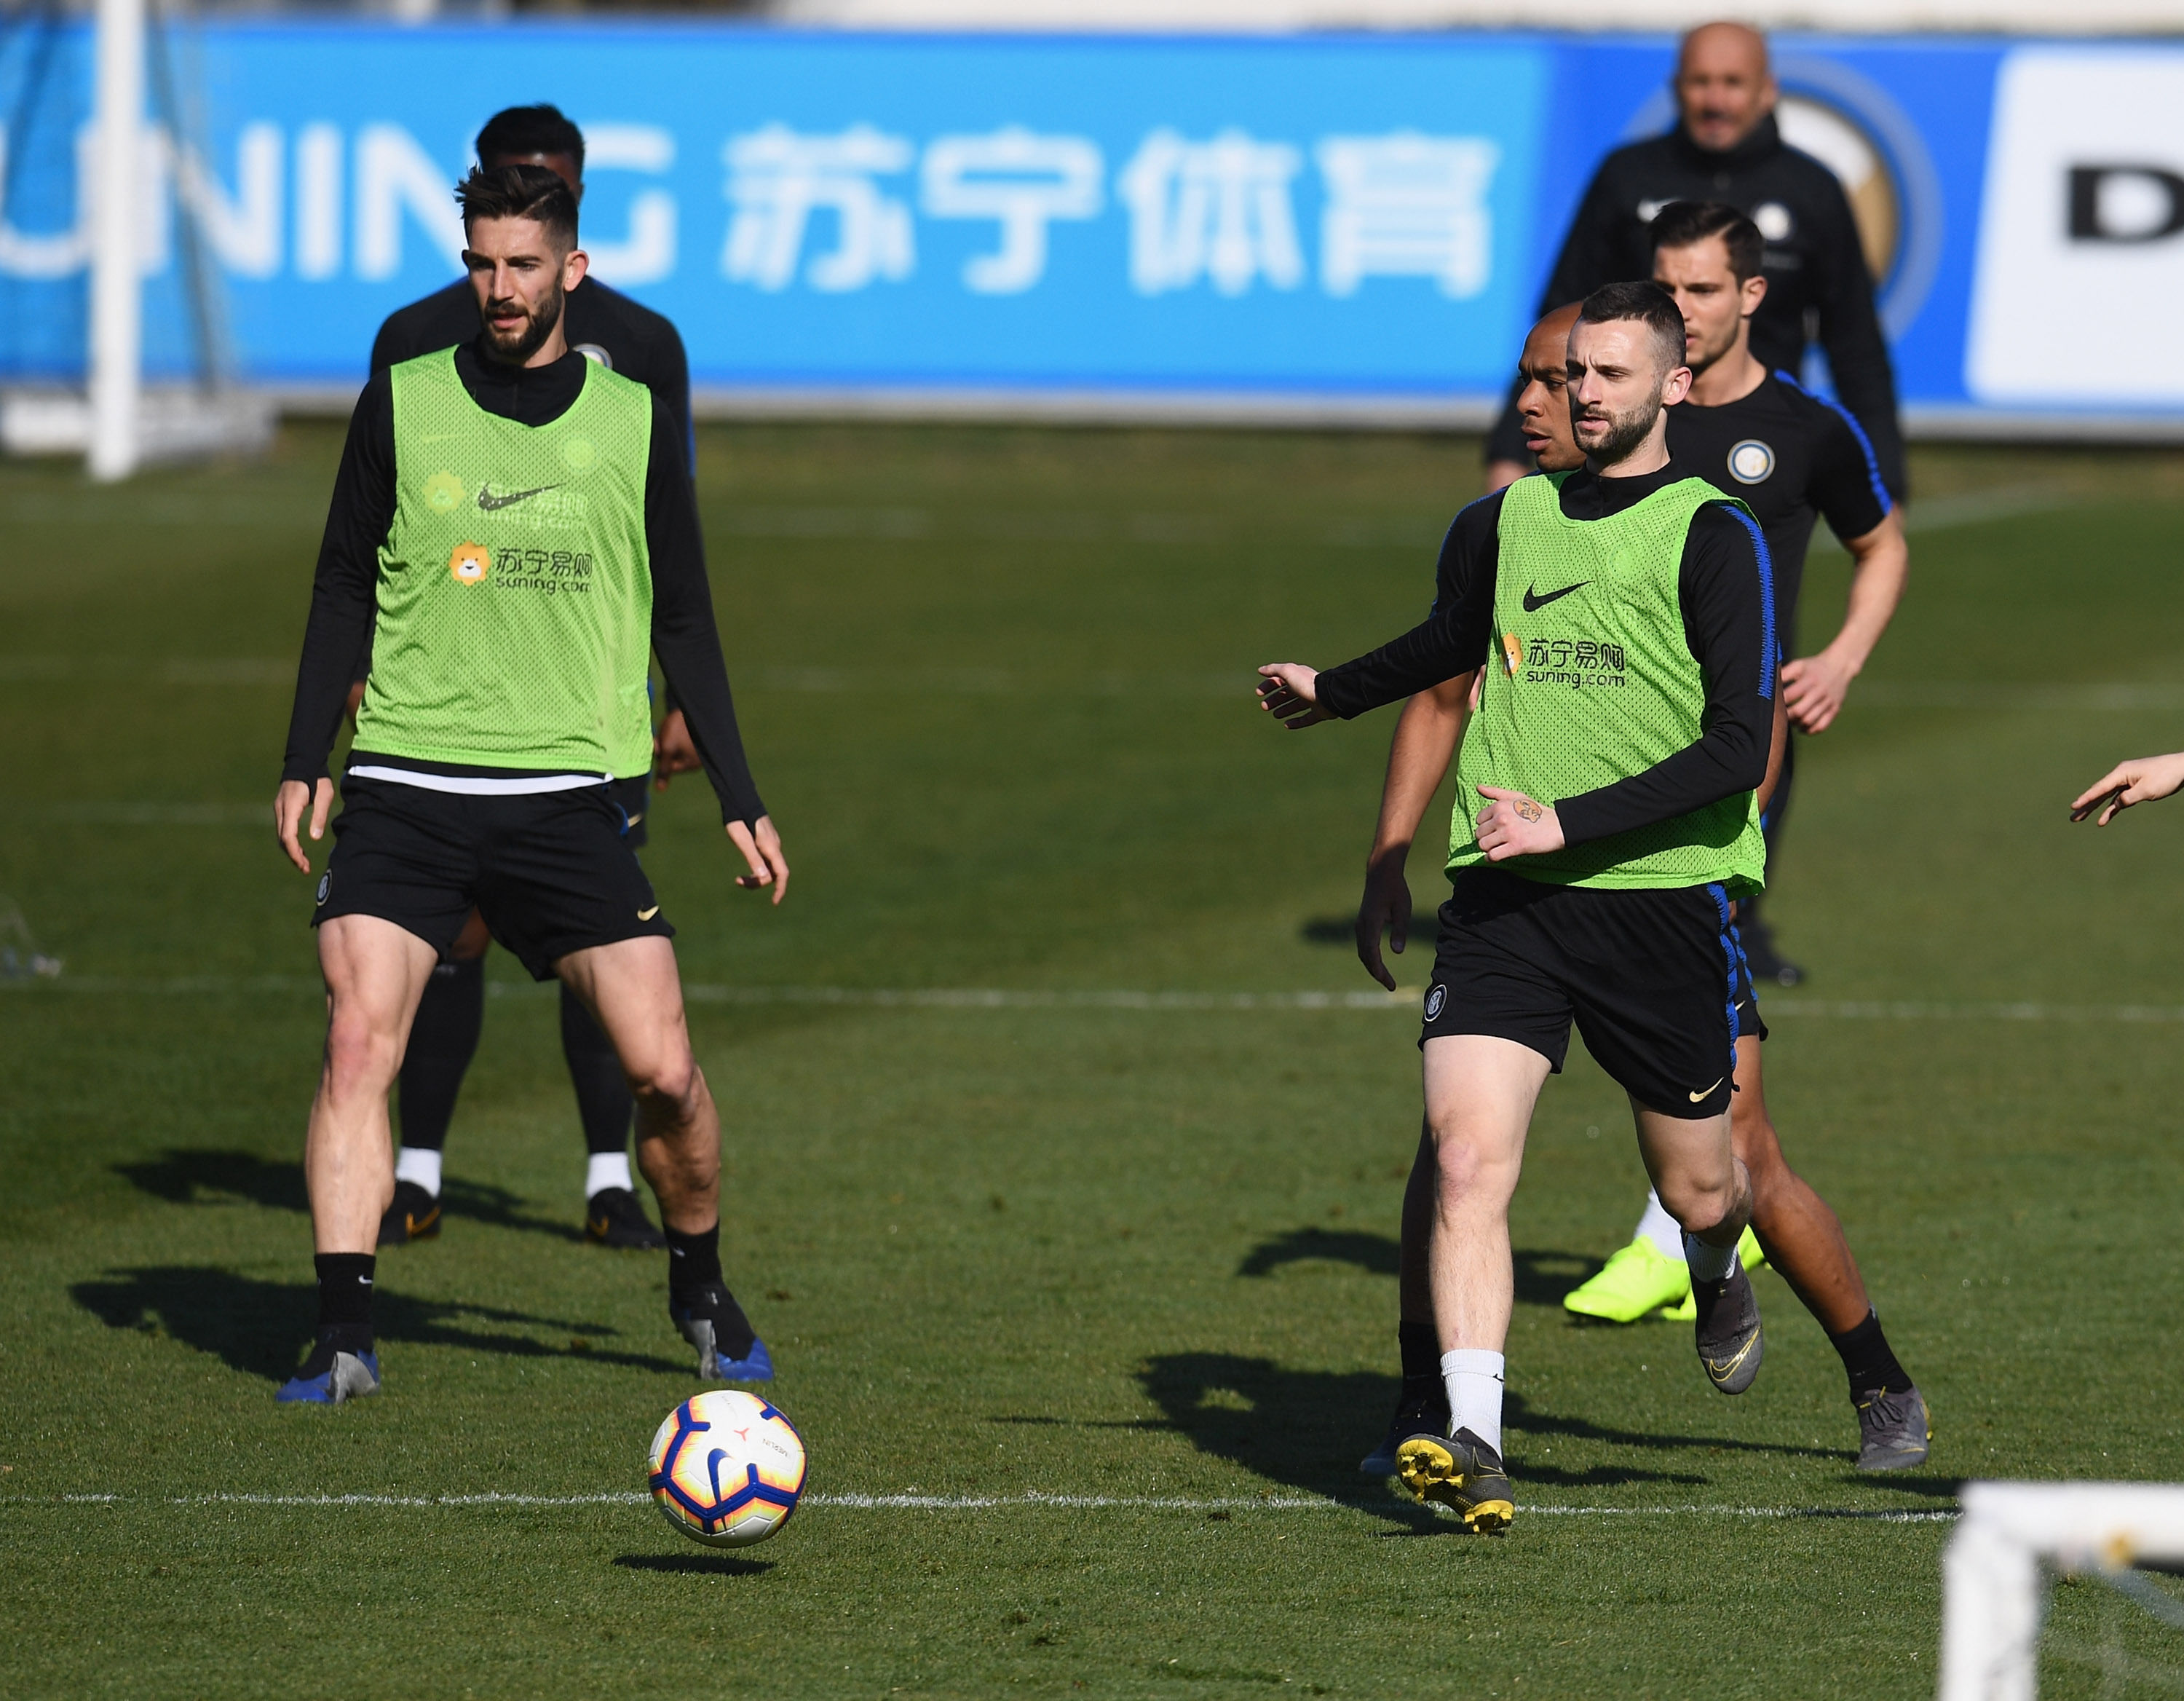 Ball possession and tactical work for the team ahead of Inter vs. Lazio